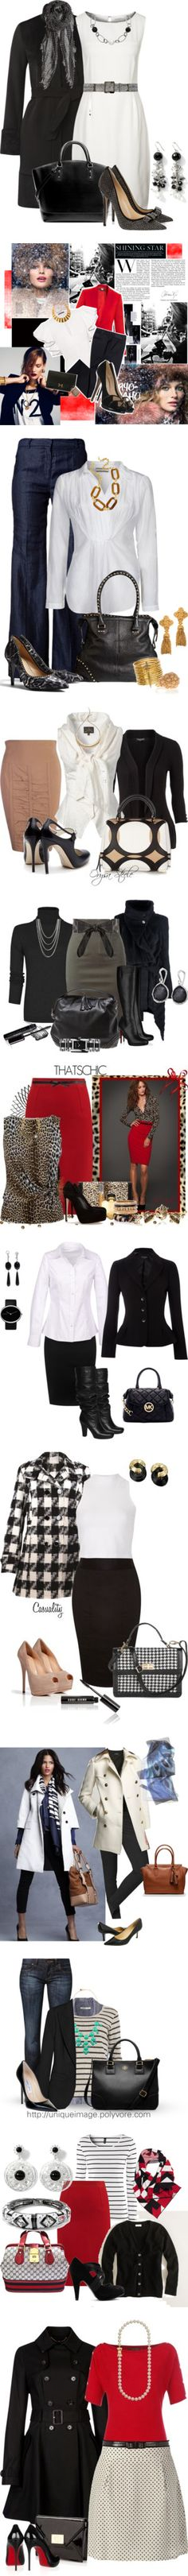 """Work Wear 23"" by kimsteenkamp ❤ liked on Polyvore"